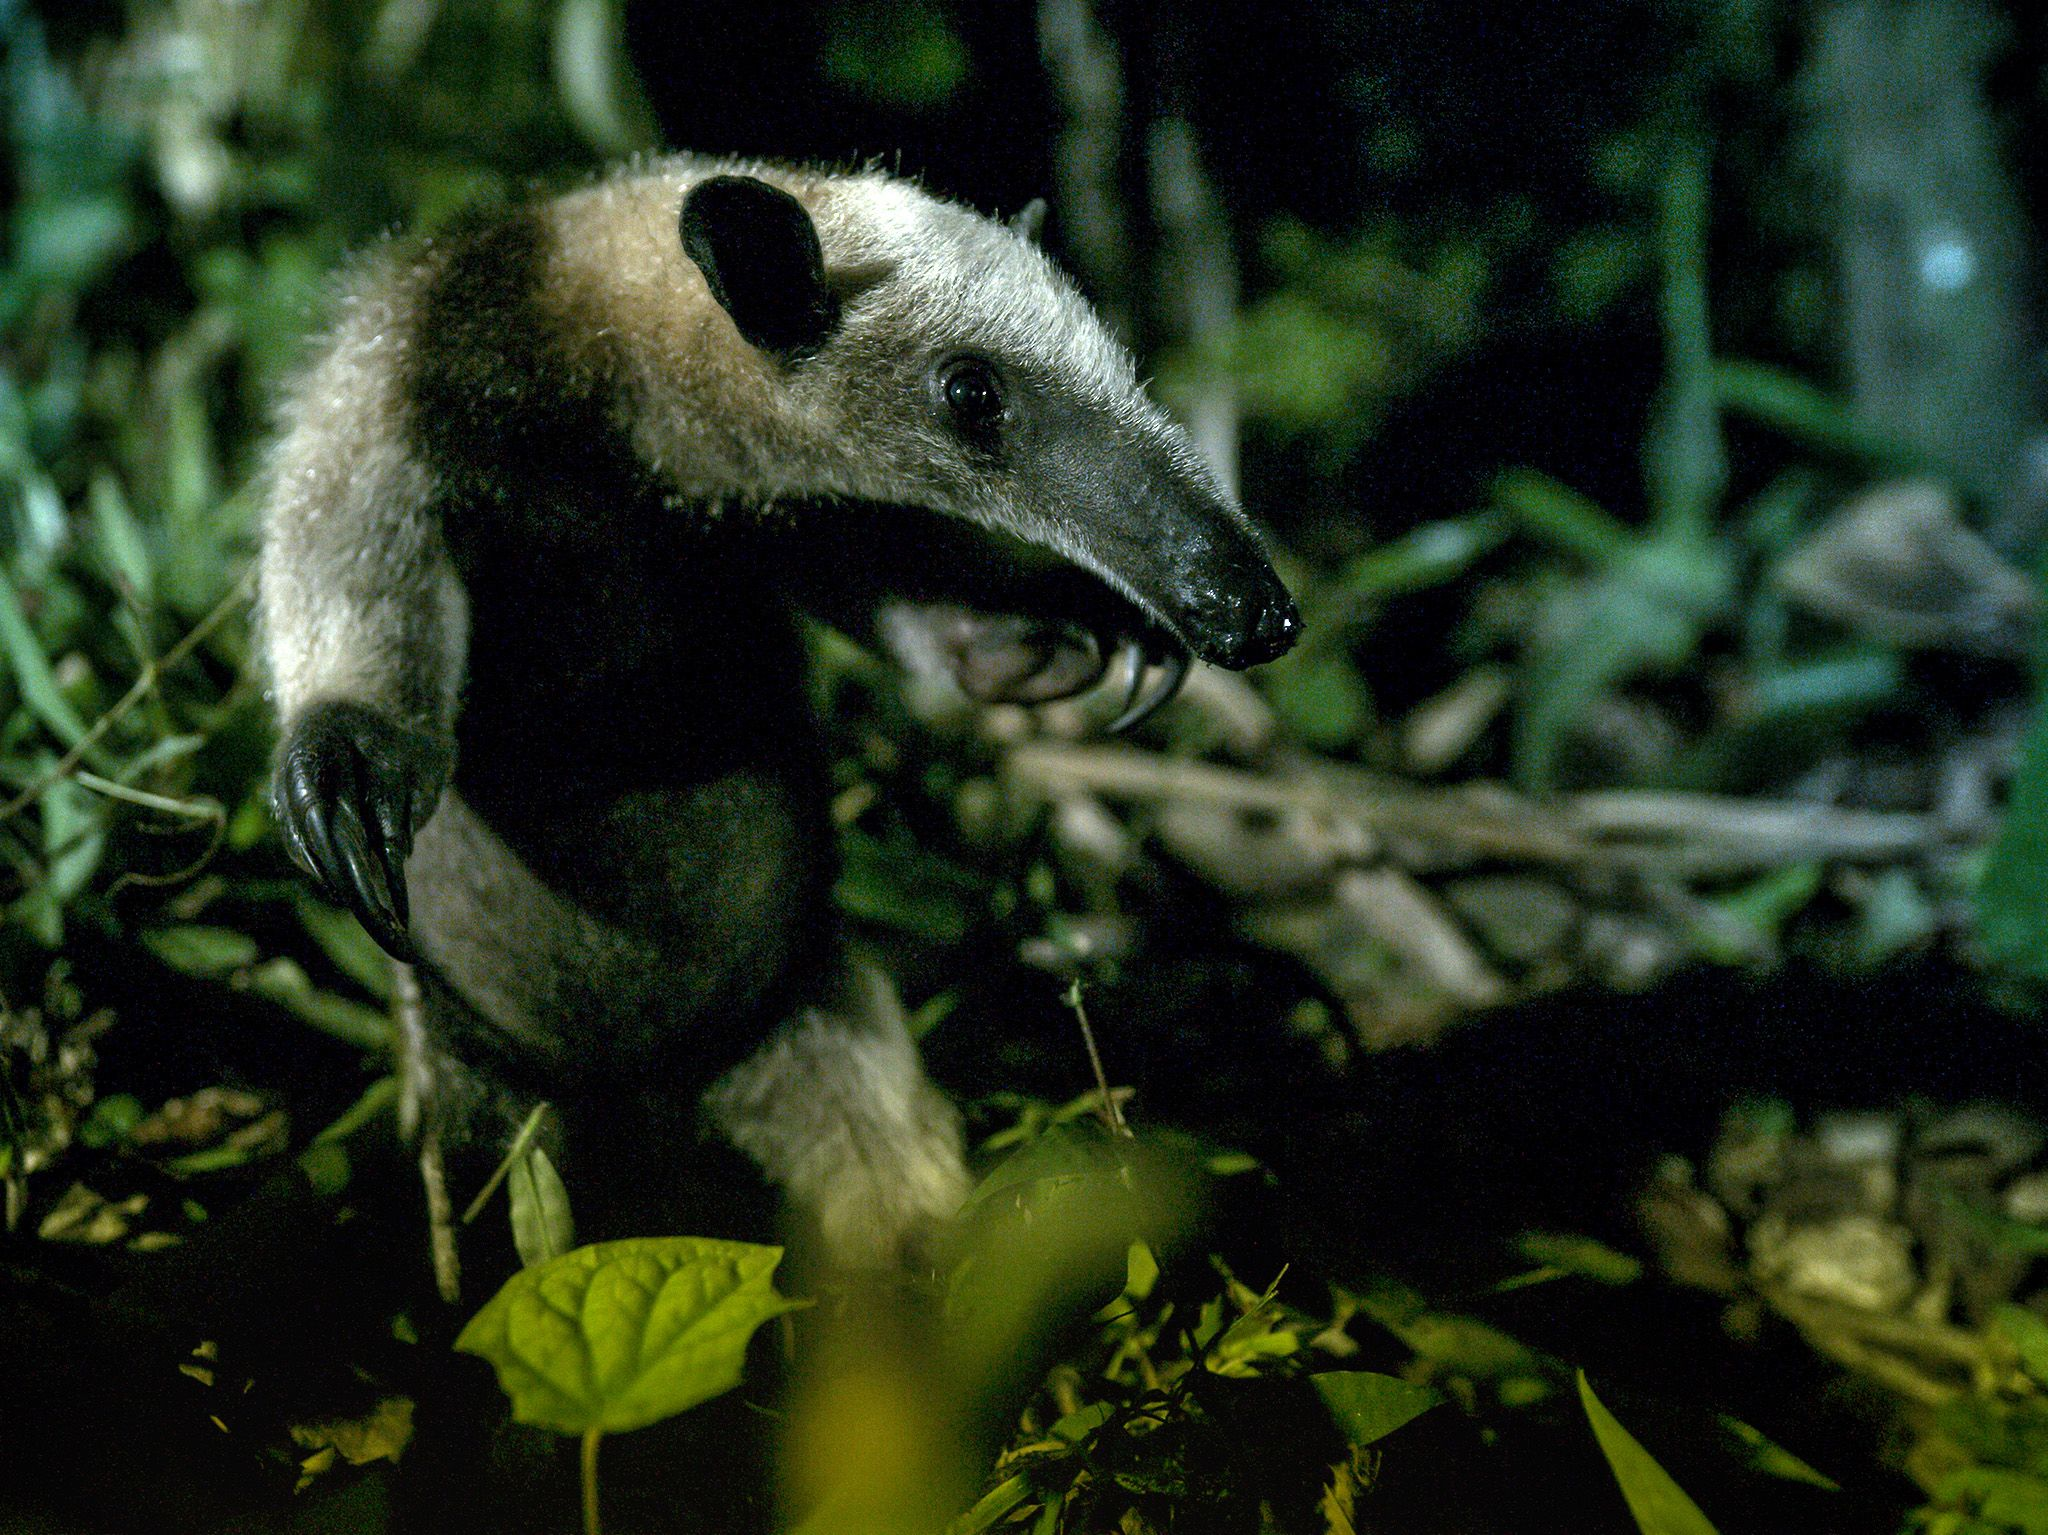 Costa Rica:  A tamandua.  This image is from Dead by Dawn. [Photo of the day - March 2019]